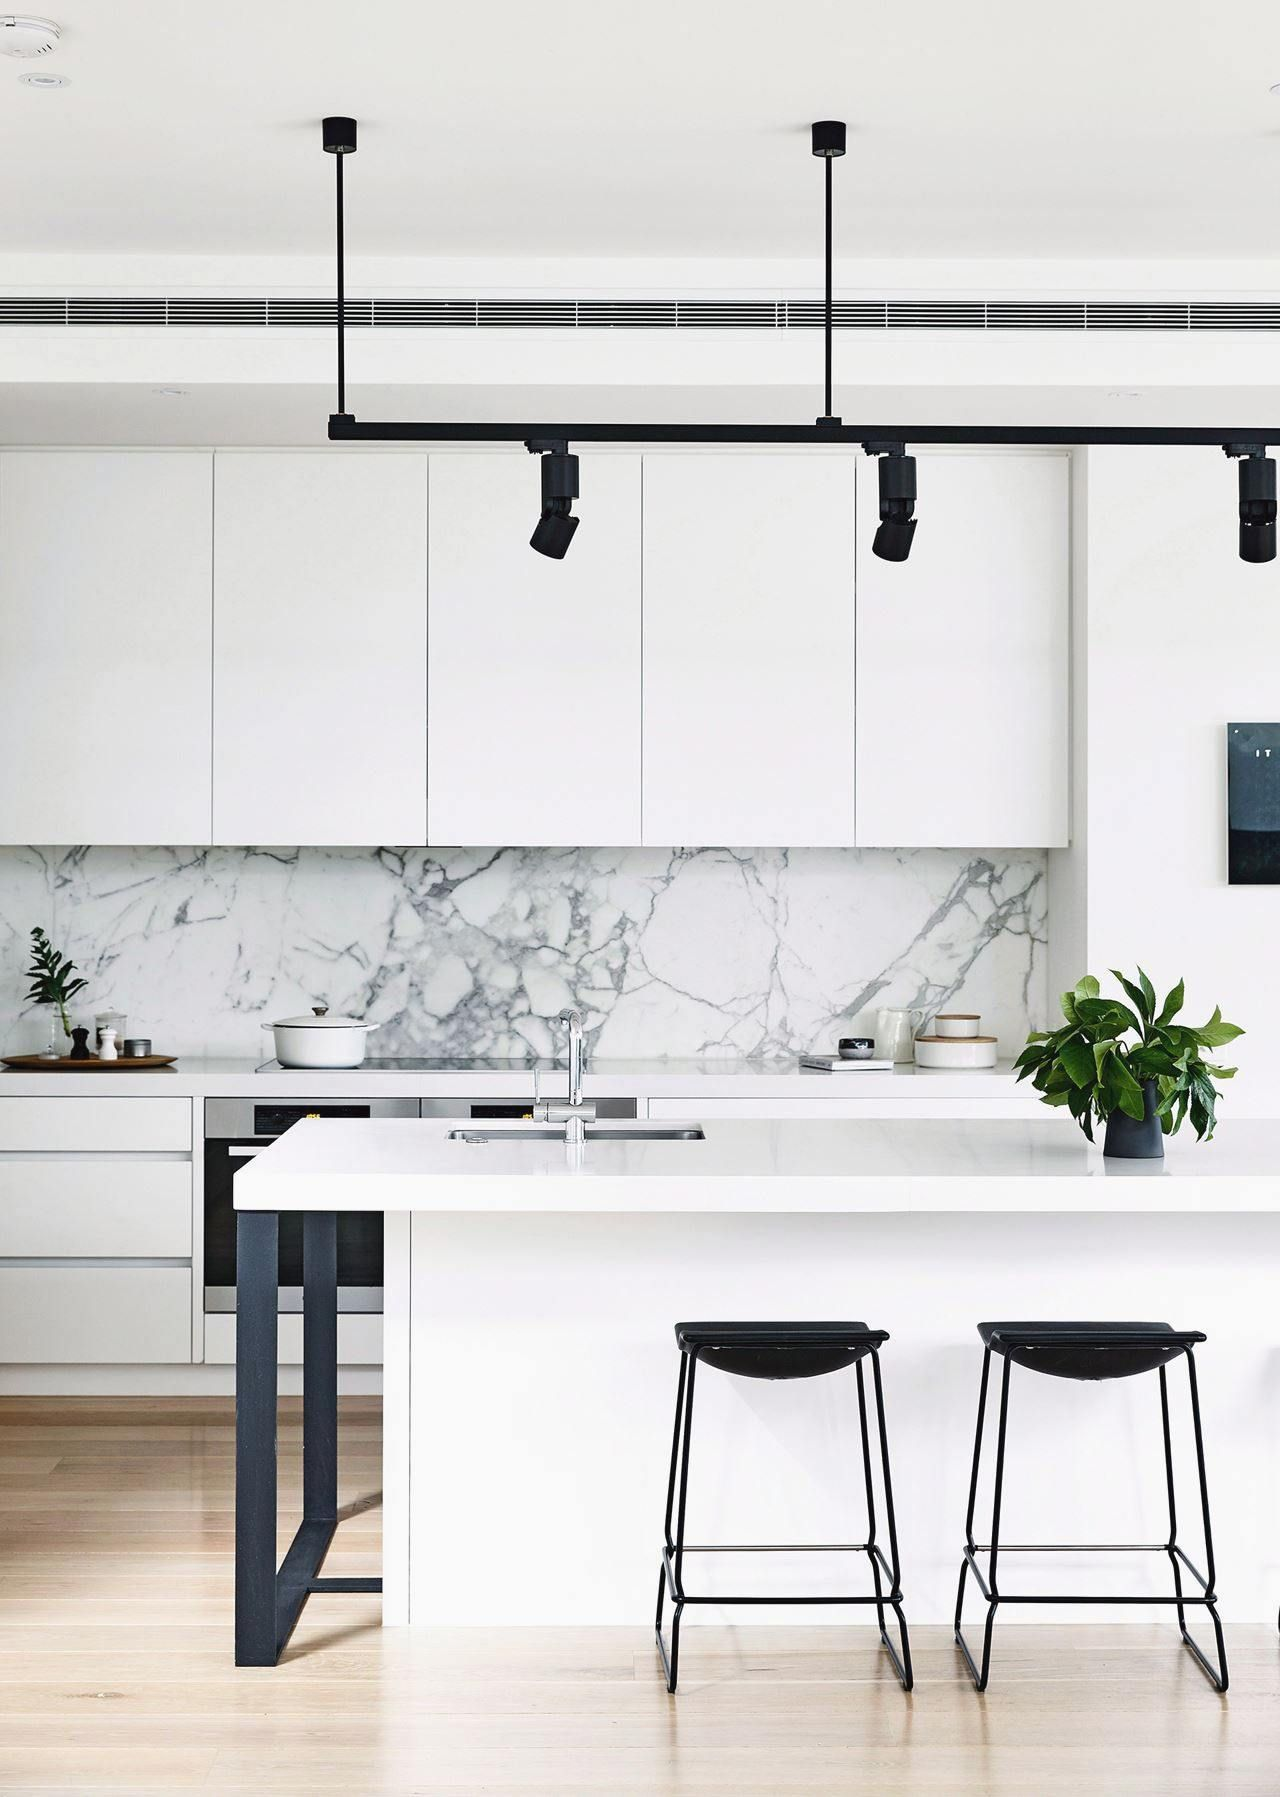 7 Kitchens With A New York City Vibe In 2020 Contemporary Kitchen Kitchen Design Trends Modern Kitchen